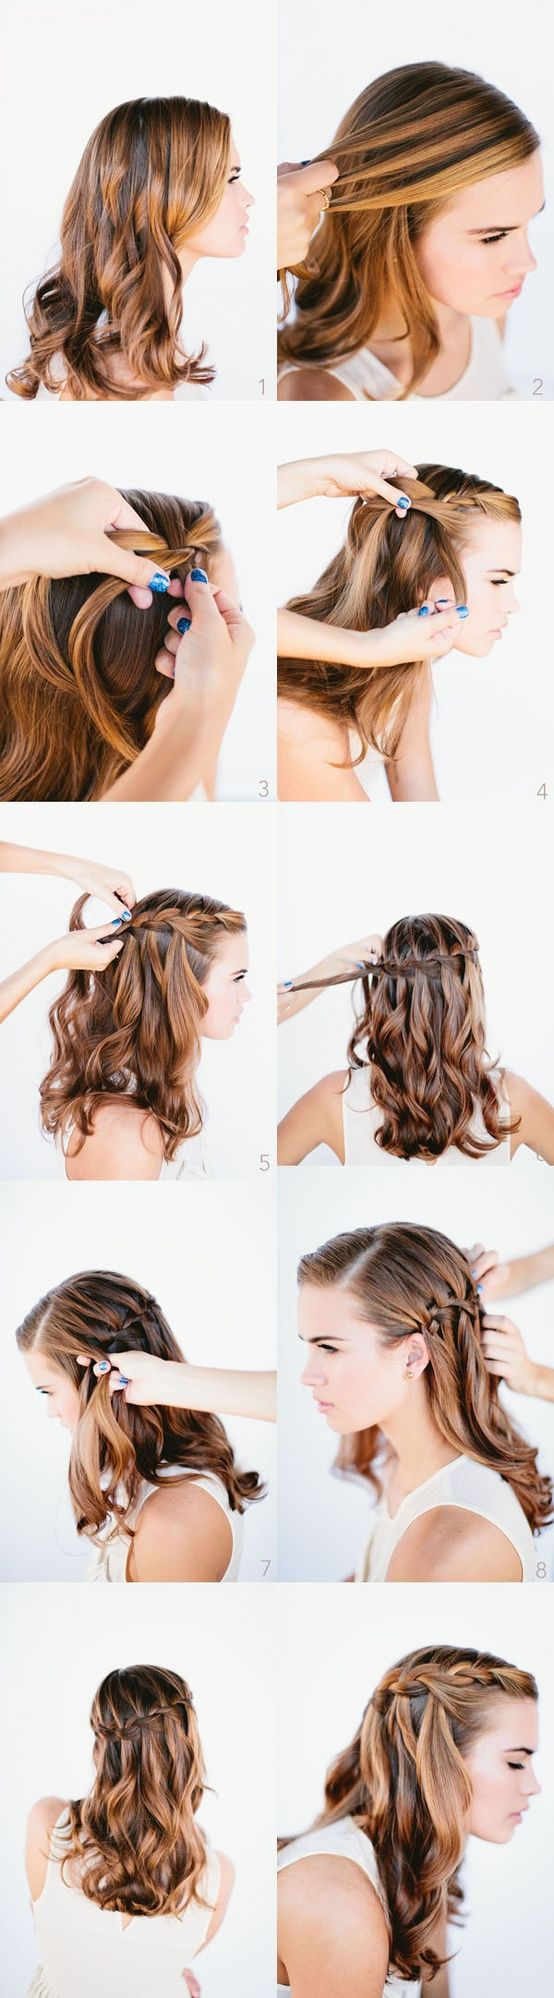 waterfall braid how to. I did this in my sisters hair and it looked amazing especially with her natural highlights. :)